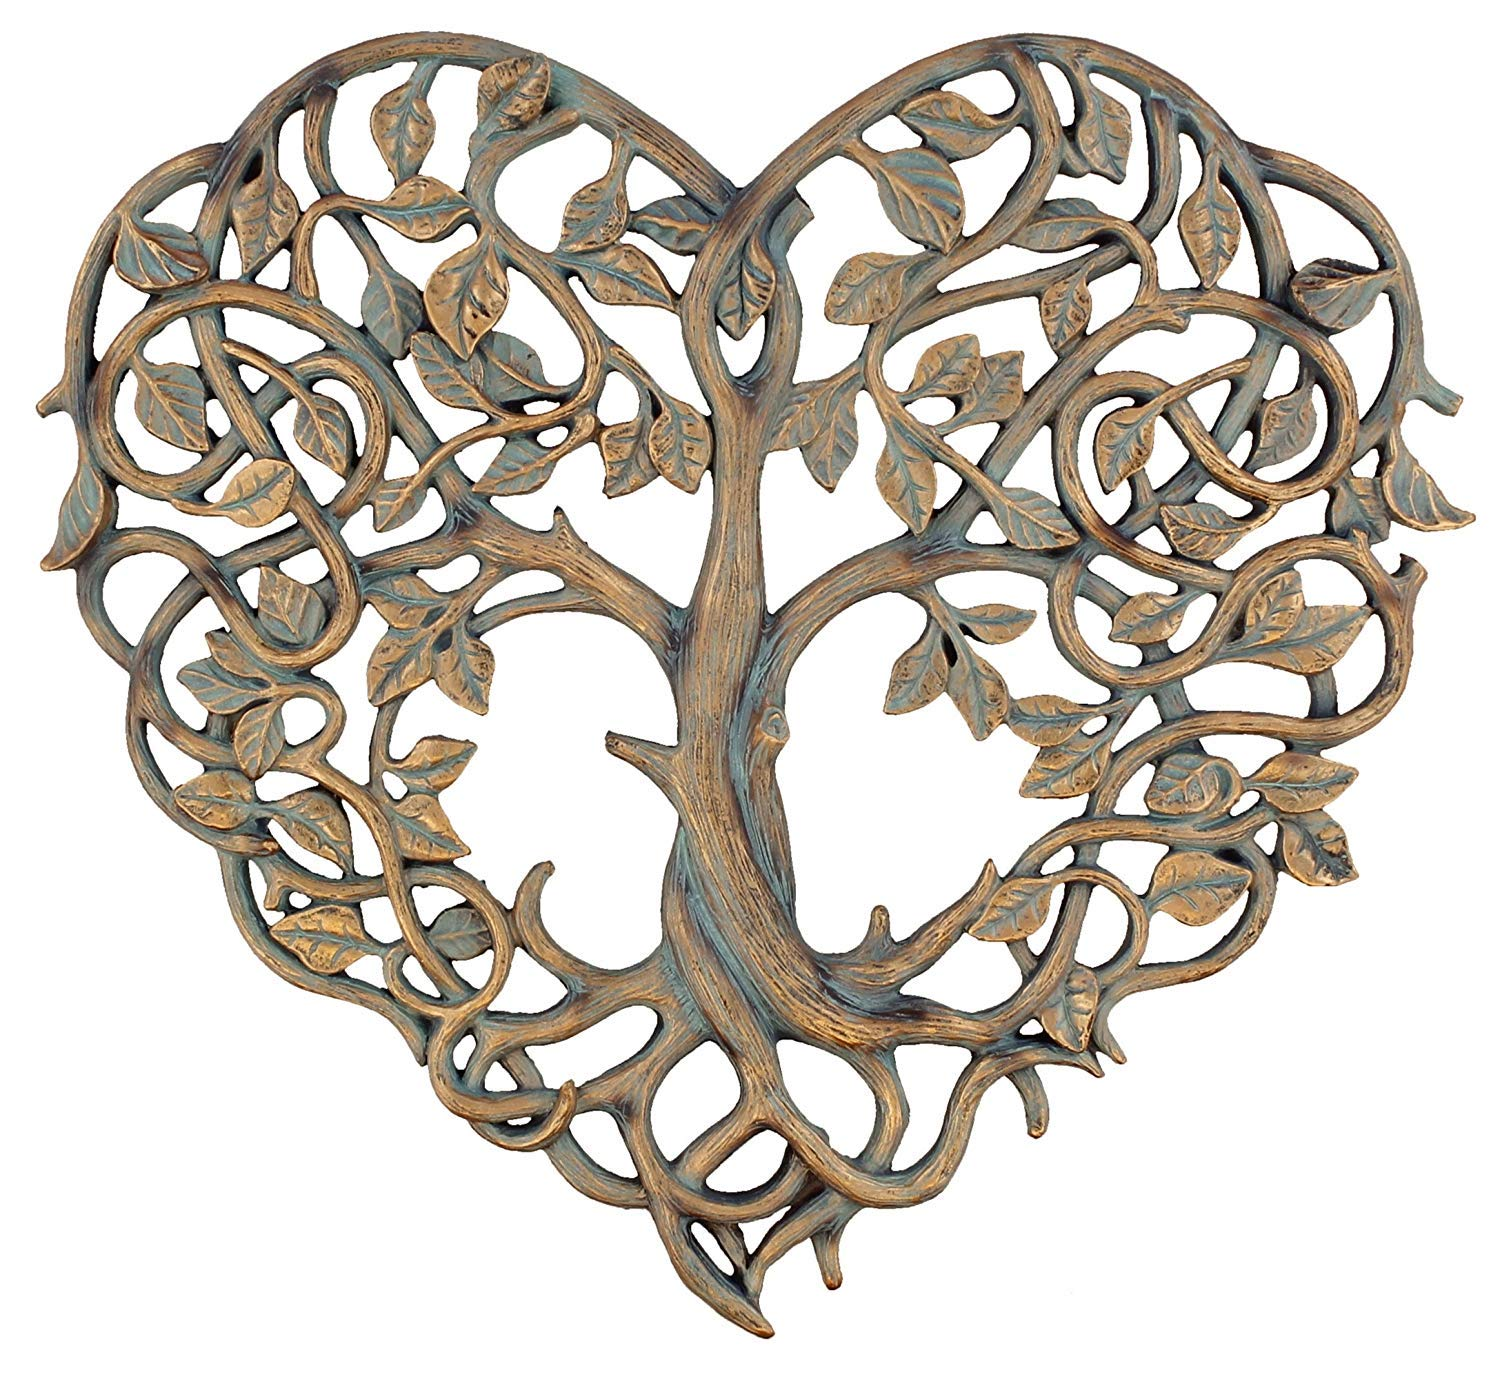 "Old River Outdoors Tree of Life/Heart Wall Plaque 12"" Decorative Art Sculpture - I Love You Decor"